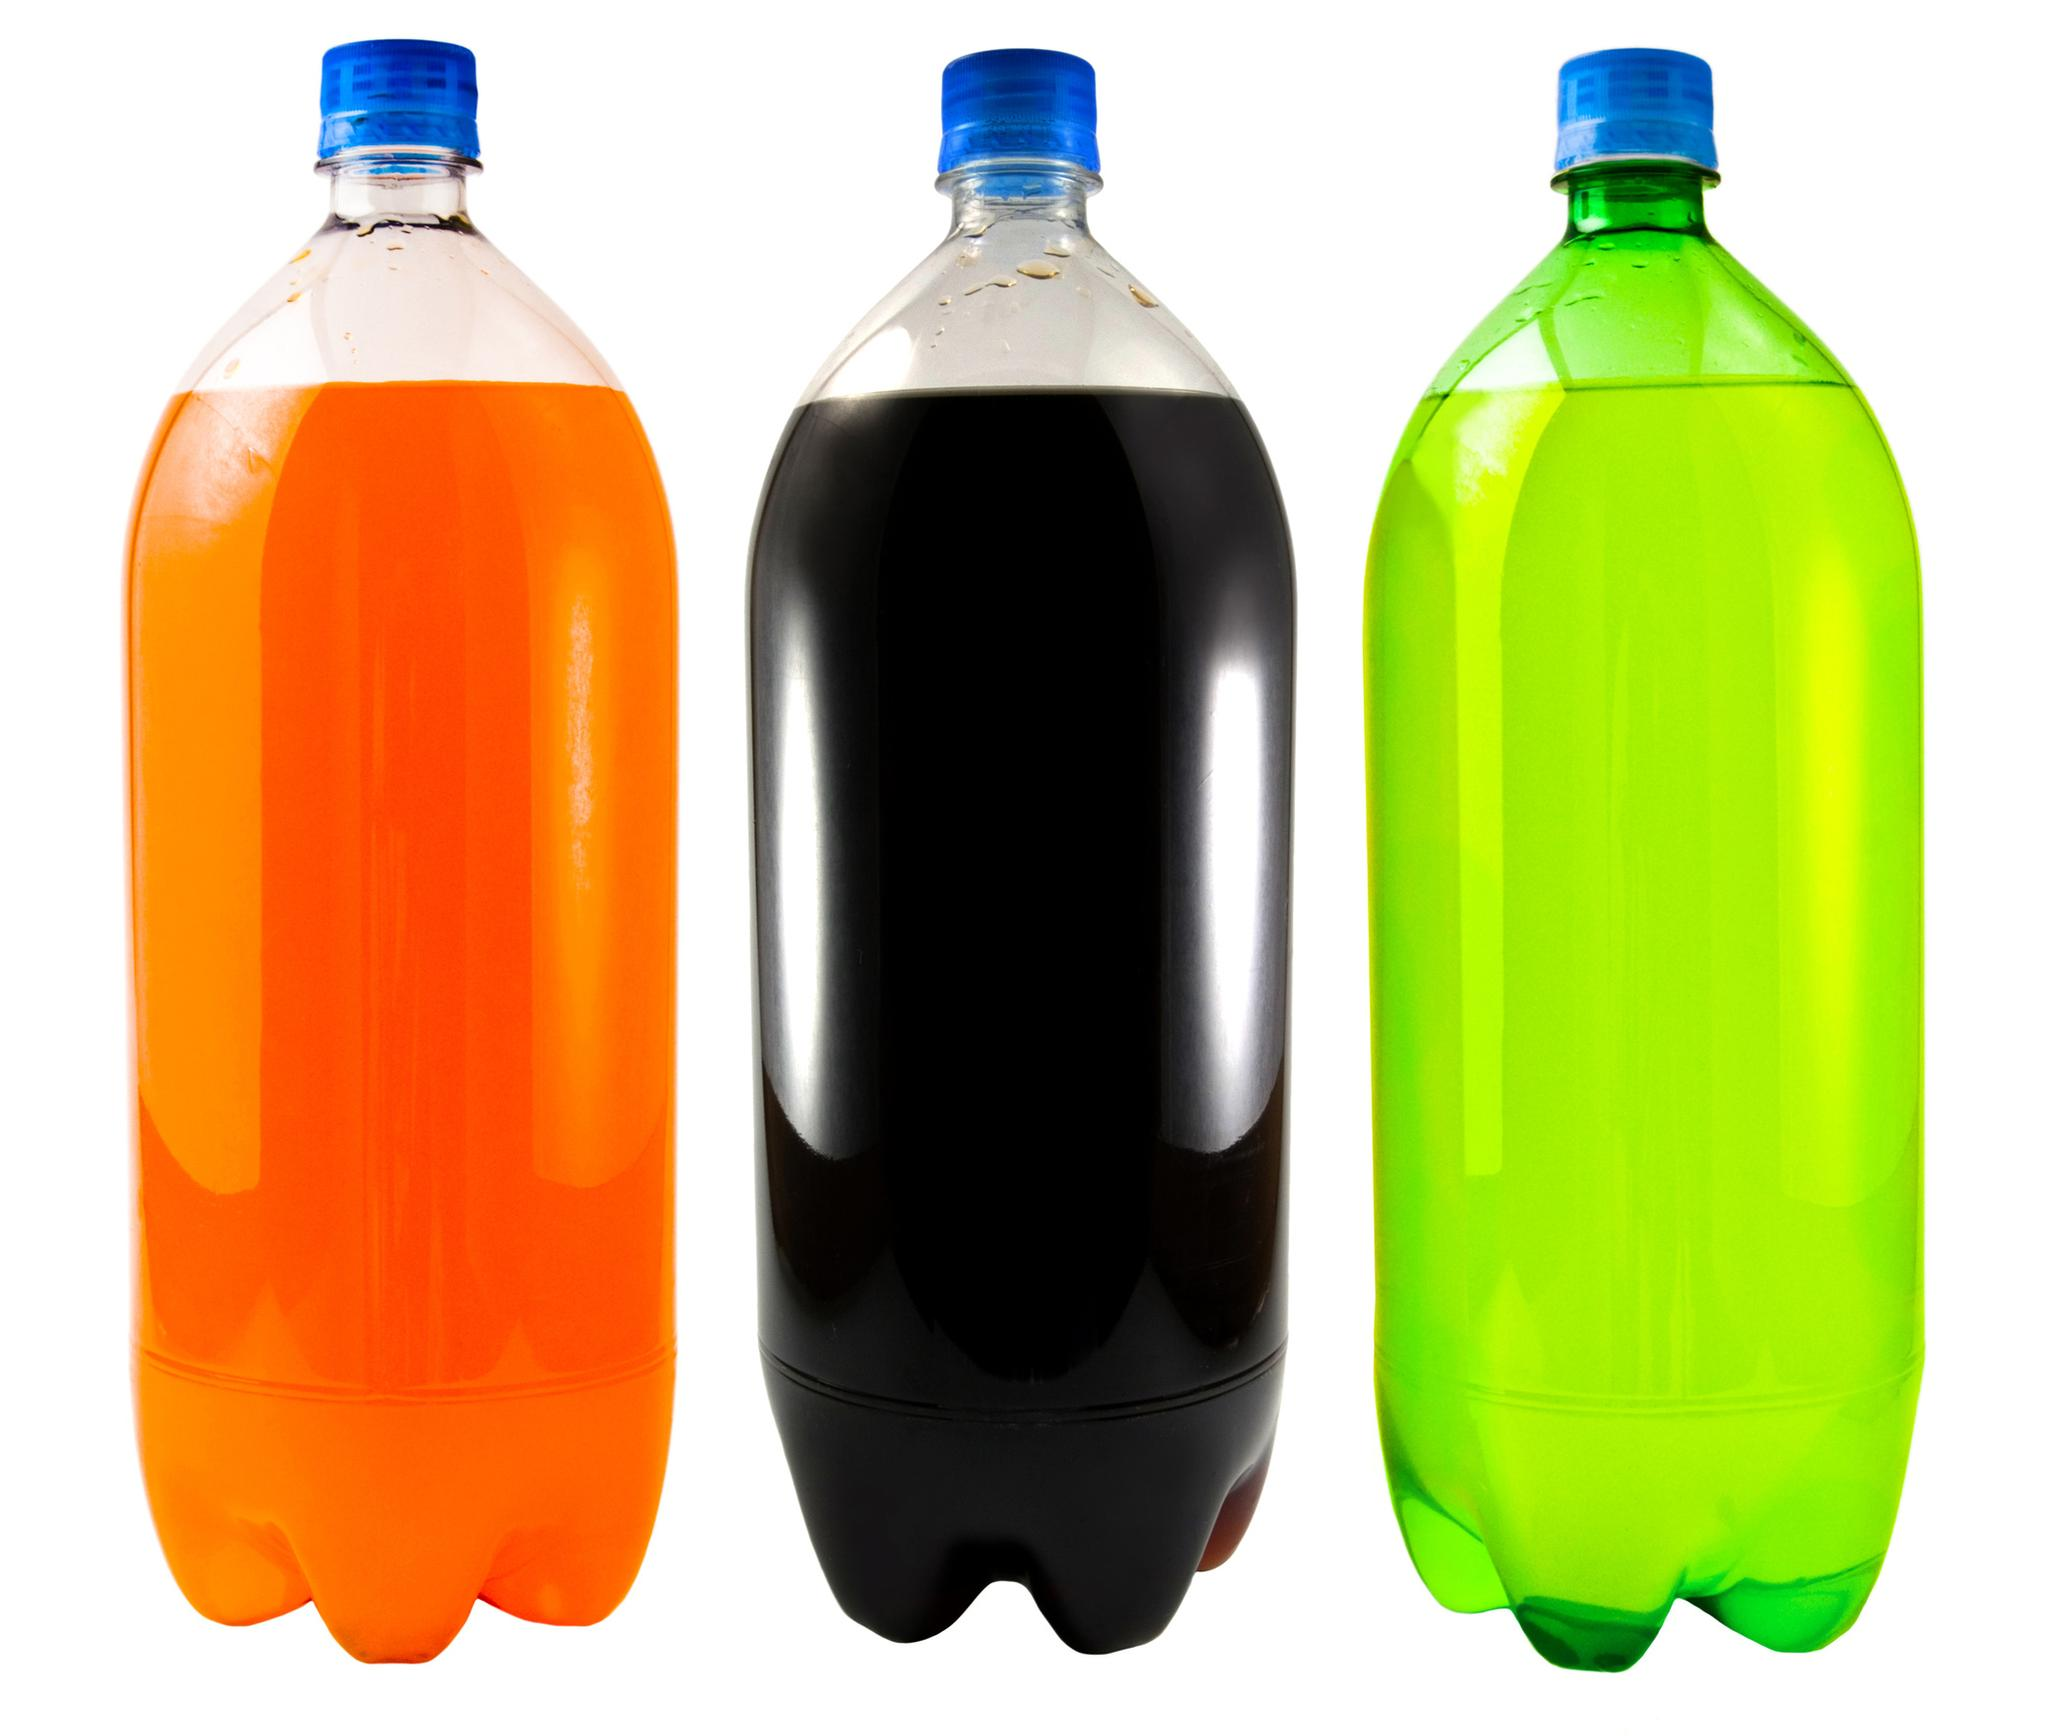 Close Up On Three Soda Bottles Isolated On A White Background The